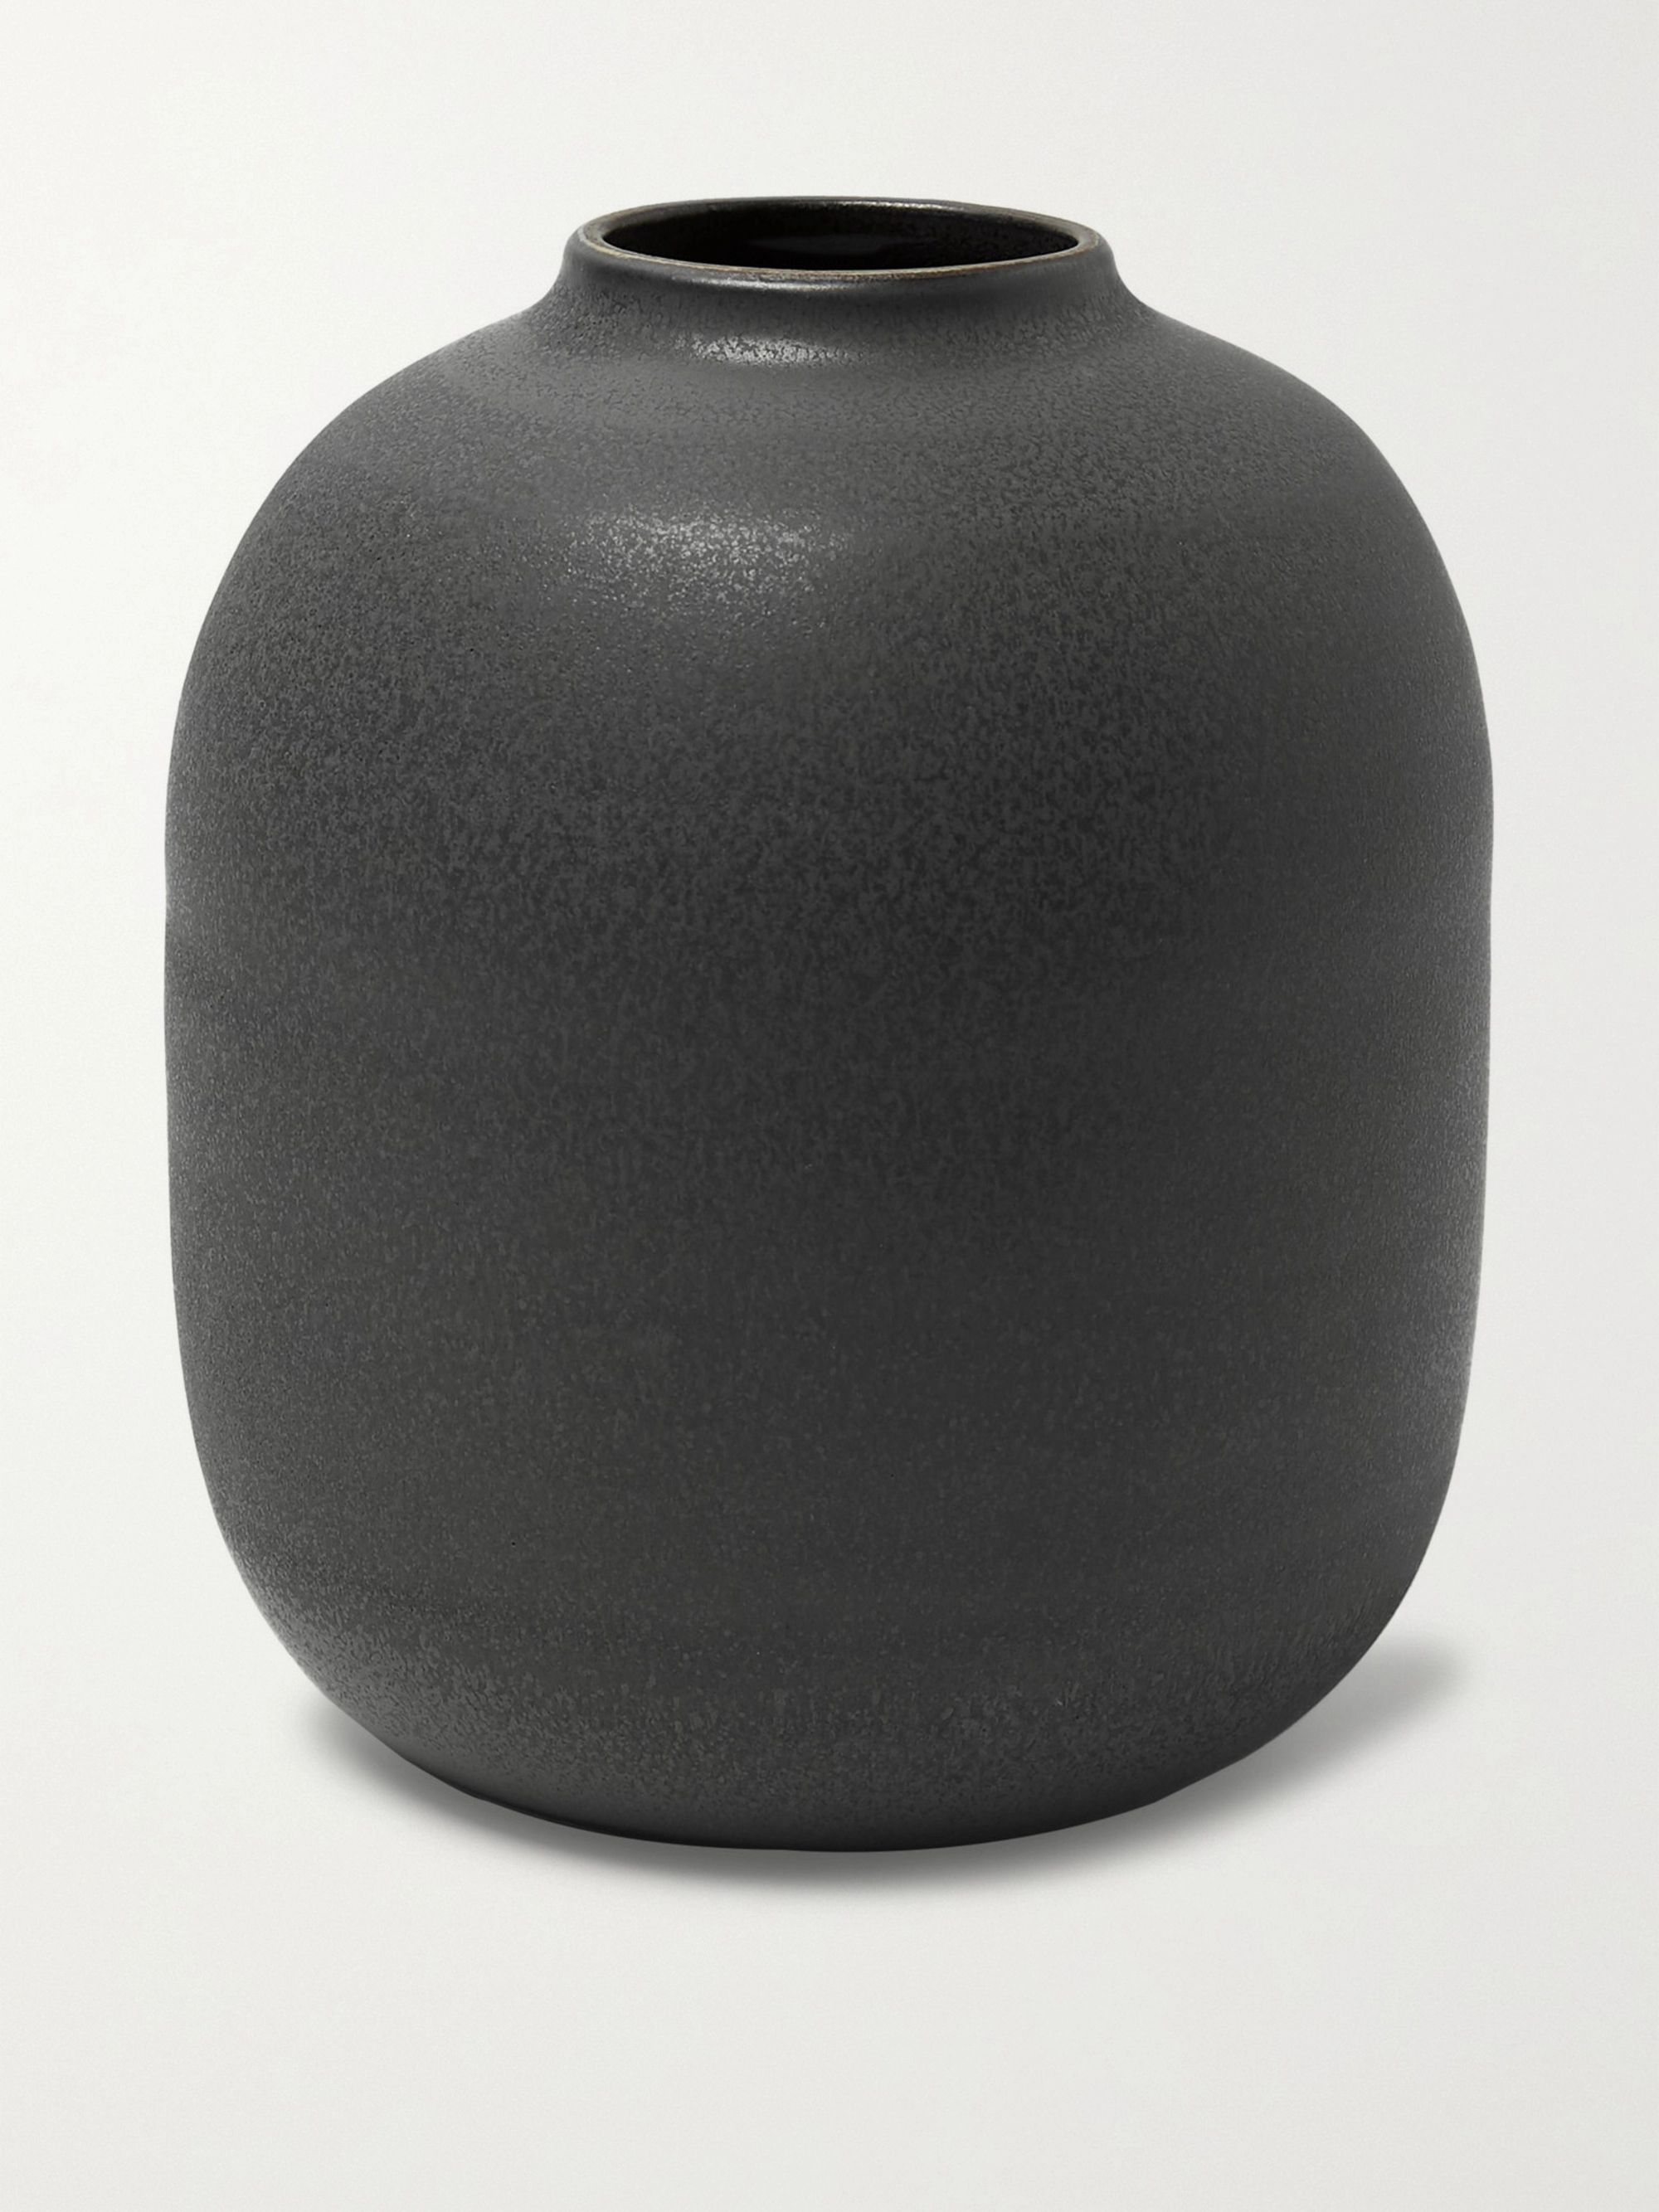 Roman & Williams Guild + Nousaku Hana Mitsubo Ceramic Vase